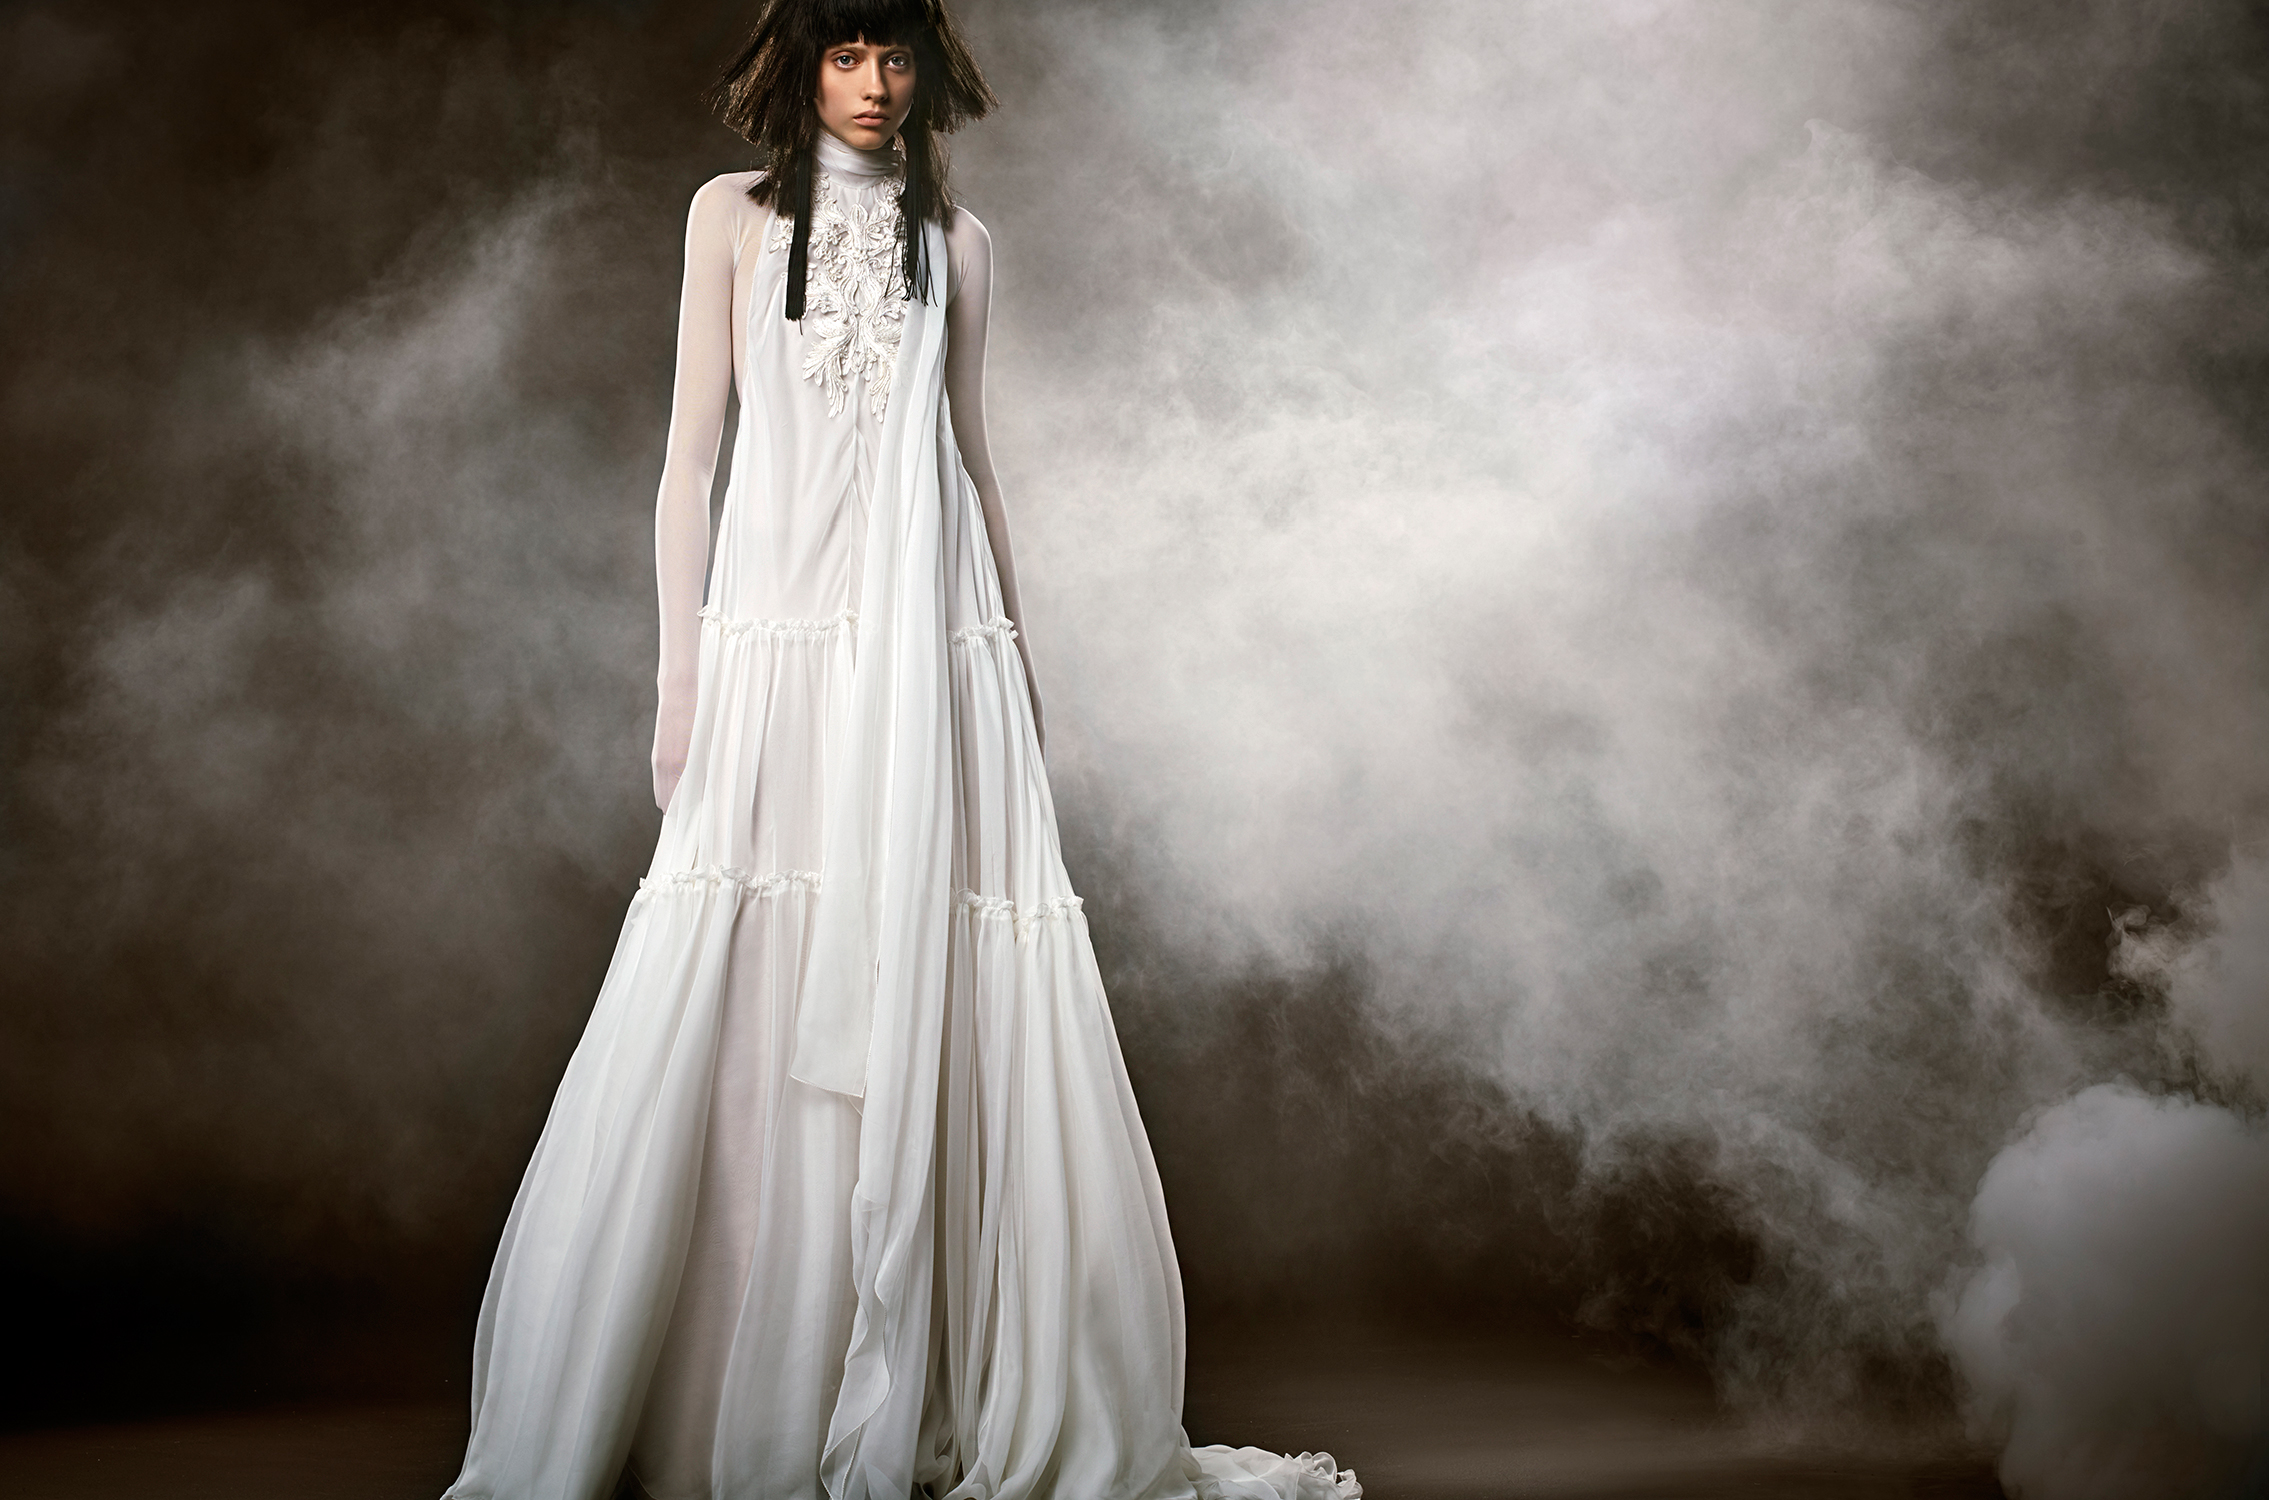 vera wang wedding dress spring 2018 high neck sheer long sleeves